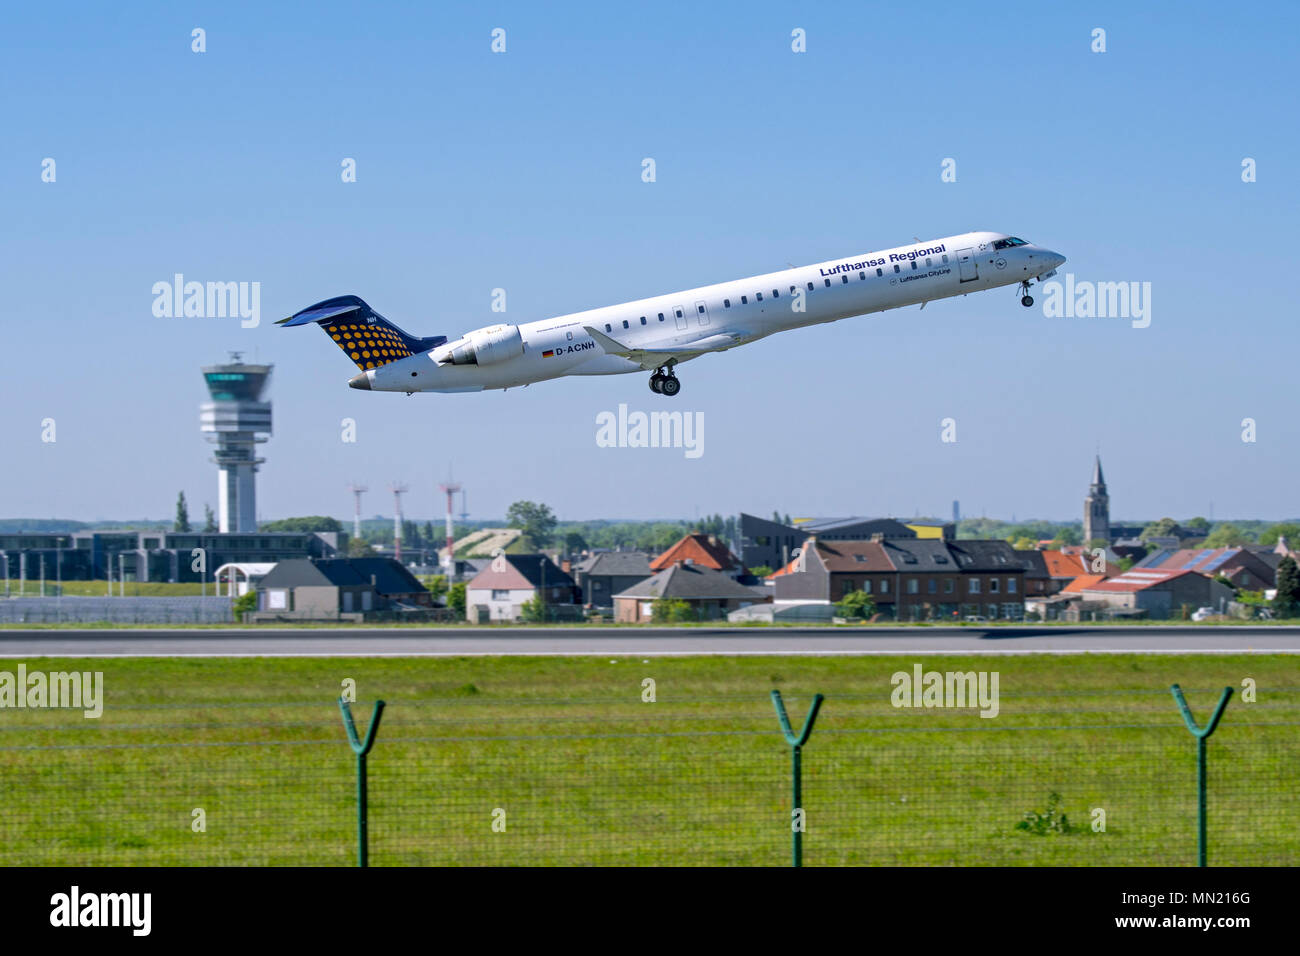 Bombardier CRJ-900LR, regional jet airliner from Lufthansa CityLine taking off from runway at Brussels Airport, Zaventem, Belgium - Stock Image